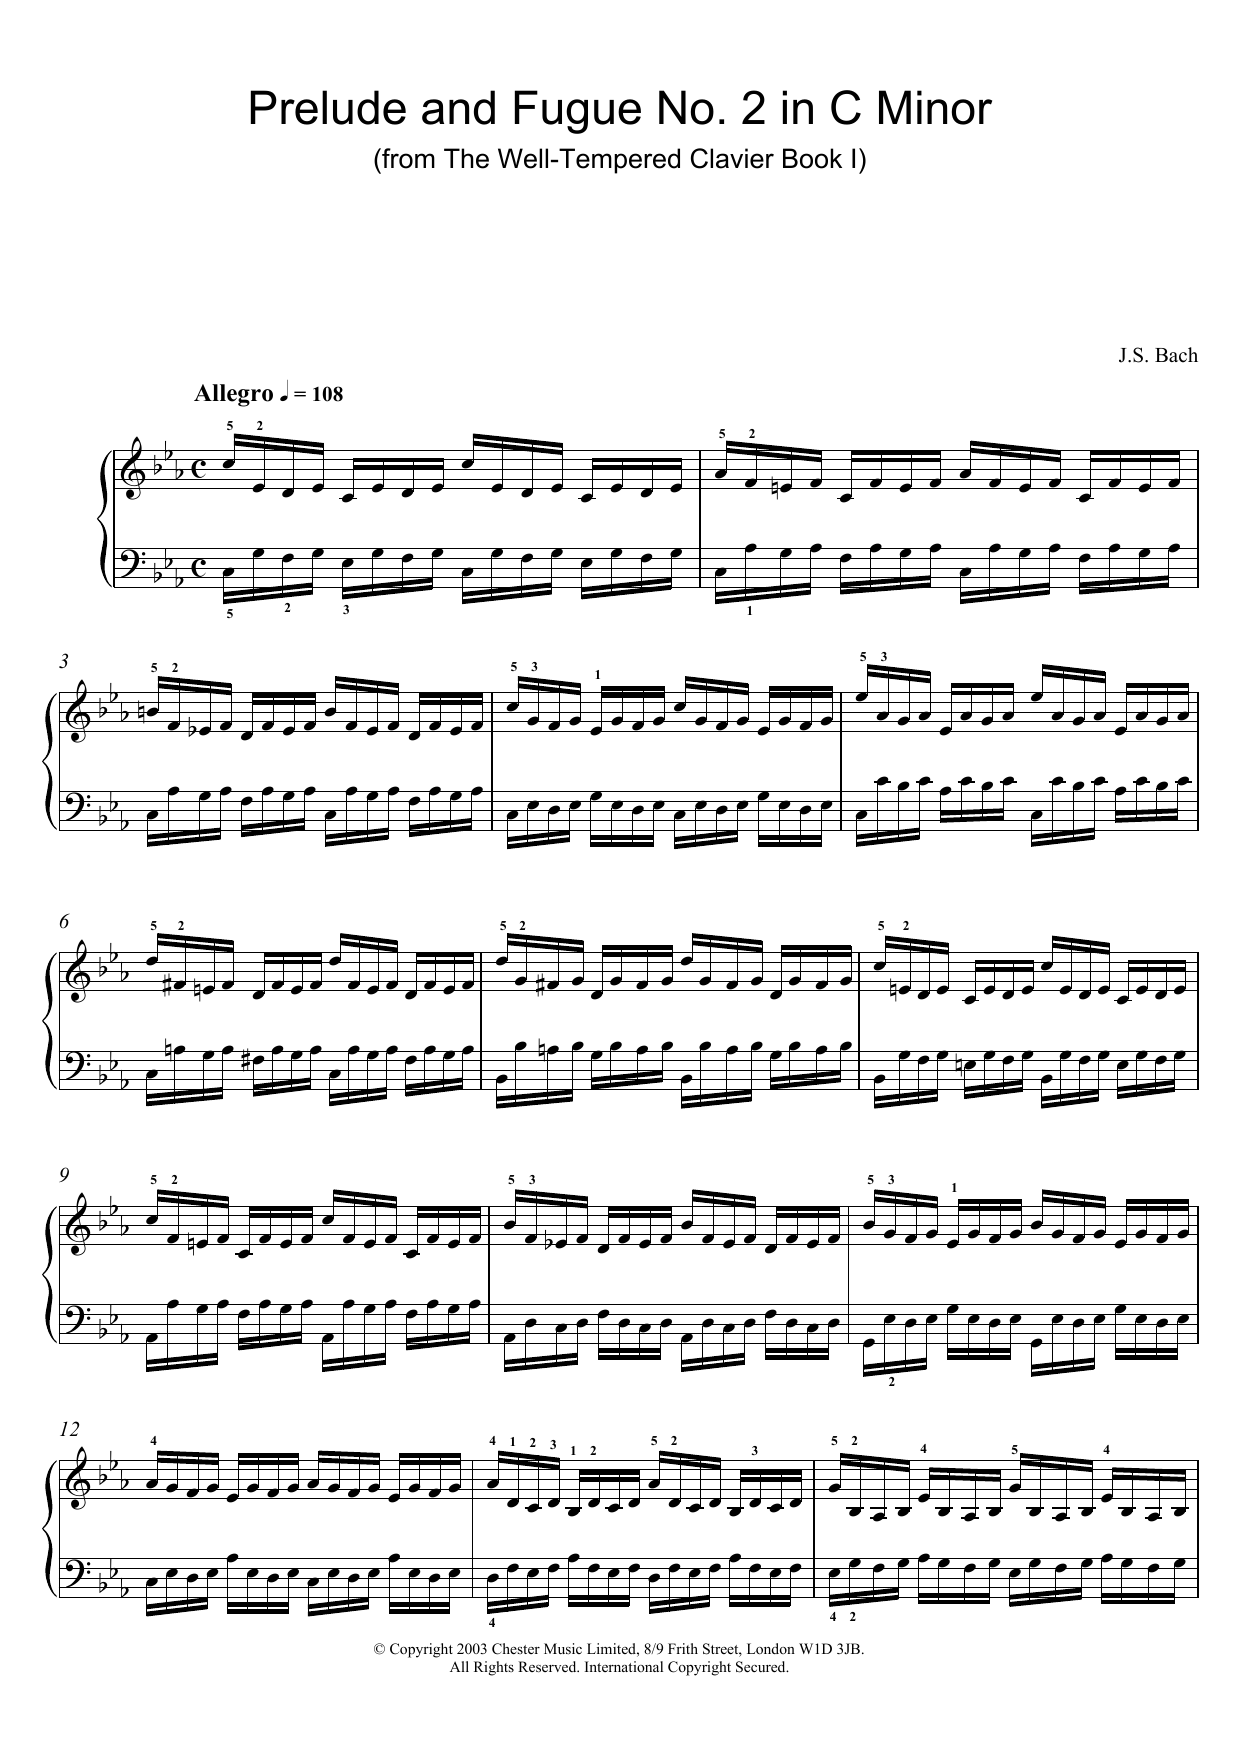 Prelude and Fugue No.2 in C Minor (from The Well-Tempered Clavier, Bk.1) sheet music